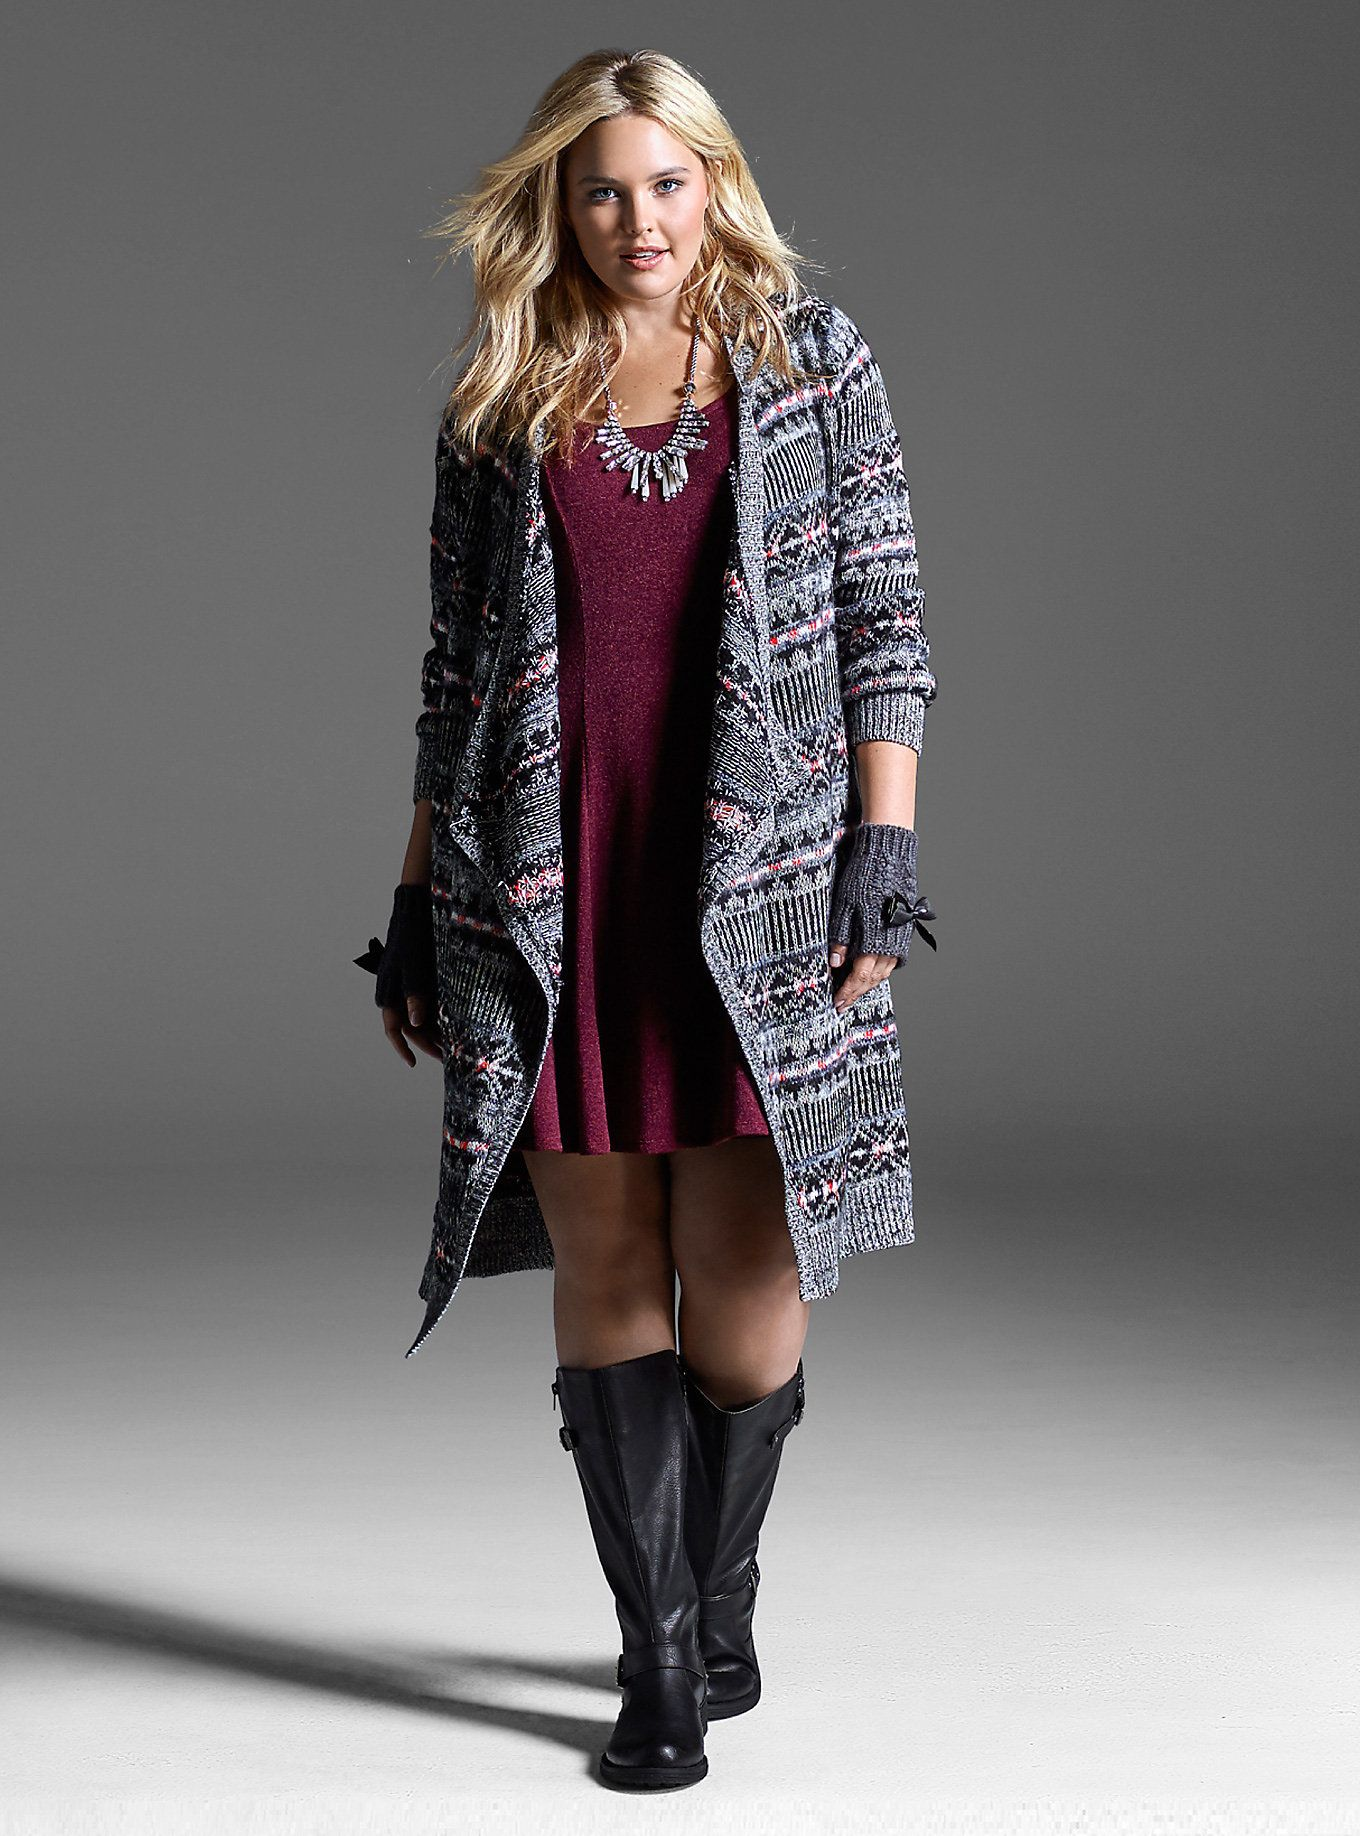 Plus Size Fall Fashion, Plus Size